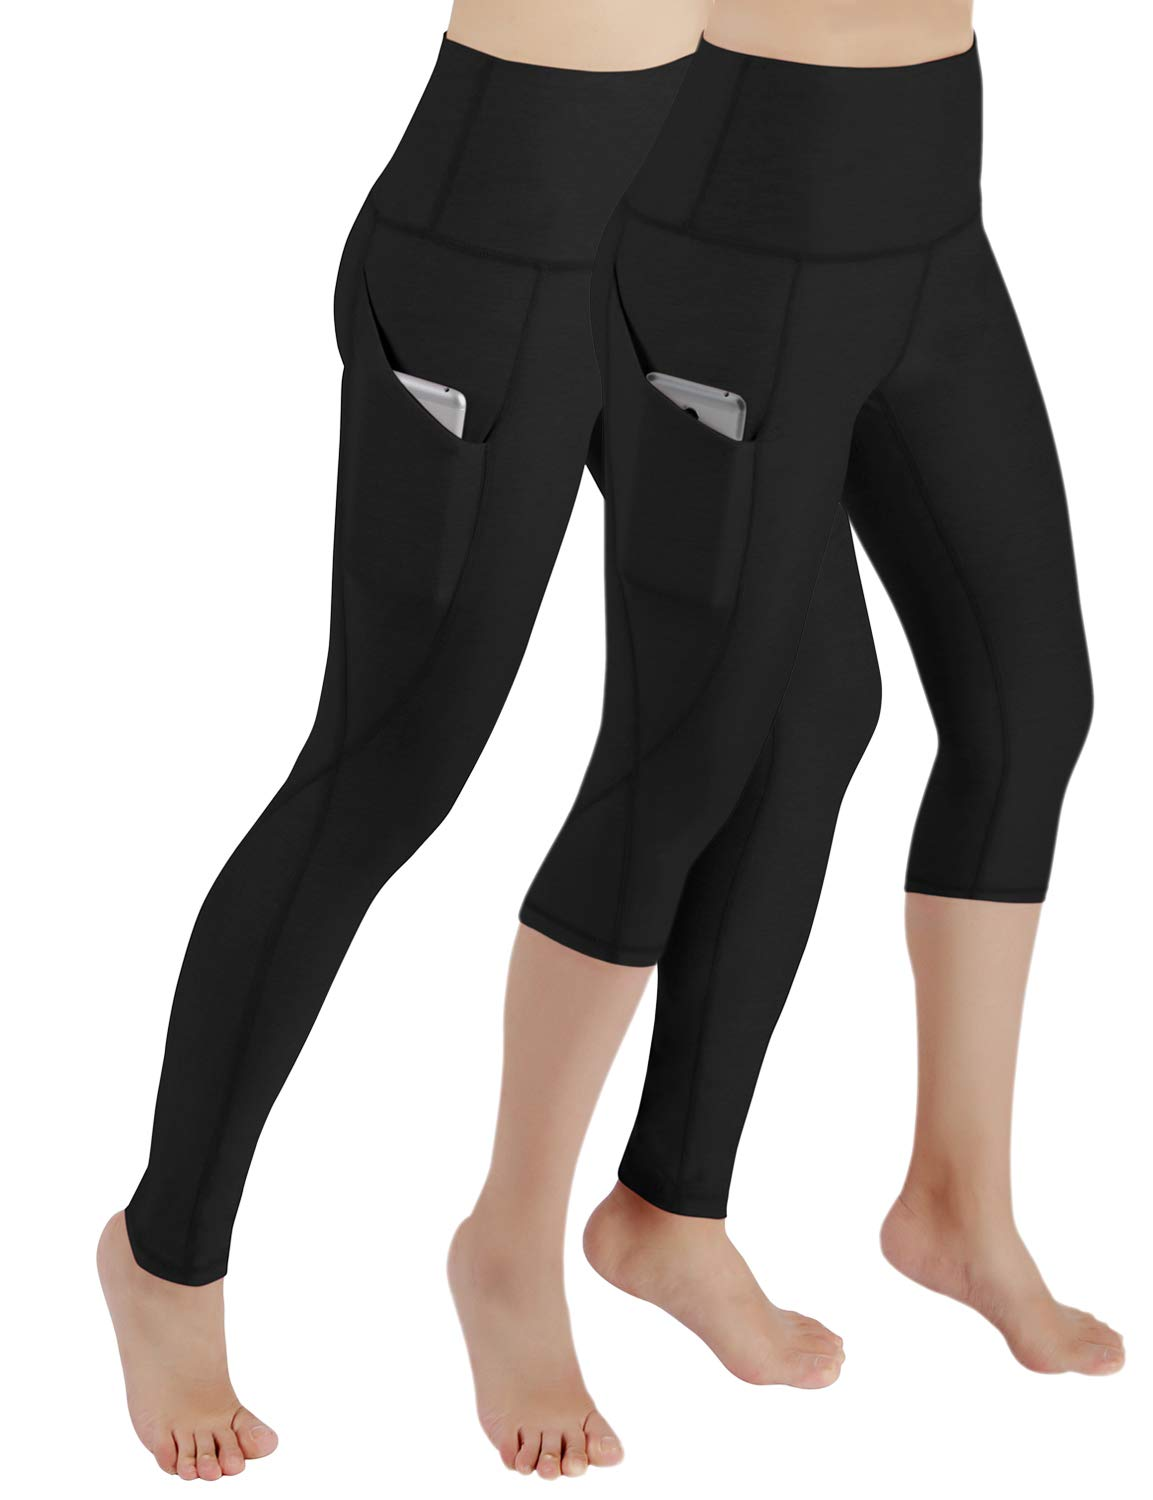 ODODOS Women's High Waist Yoga Capris with Pockets,Tummy Control,Workout Capris Running 4 Way Stretch Yoga Leggings with Pockets,2Pack-714Black/715Black,Small by ODODOS